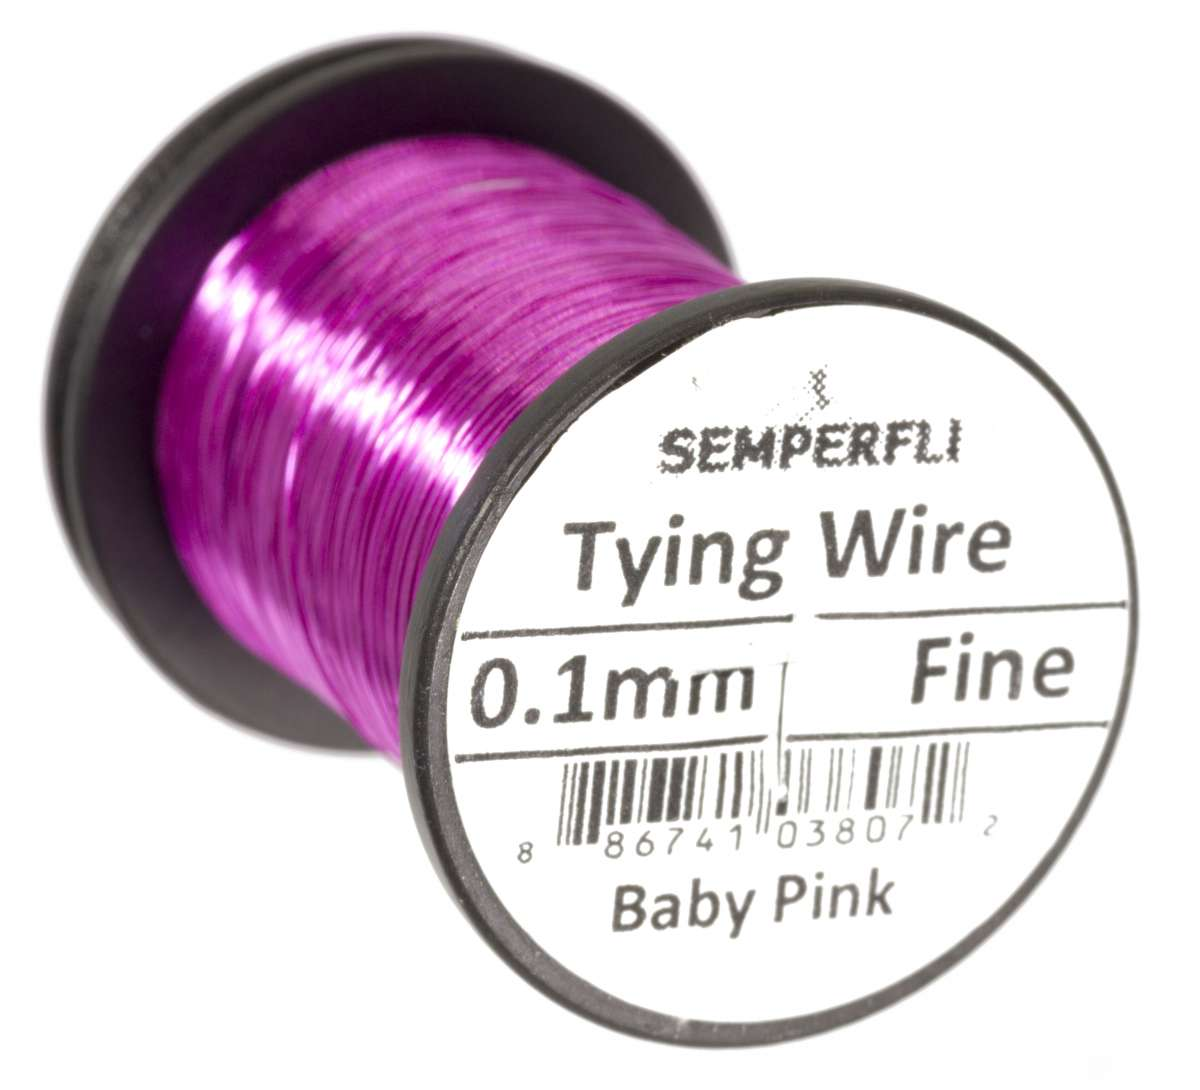 finewire baby pink